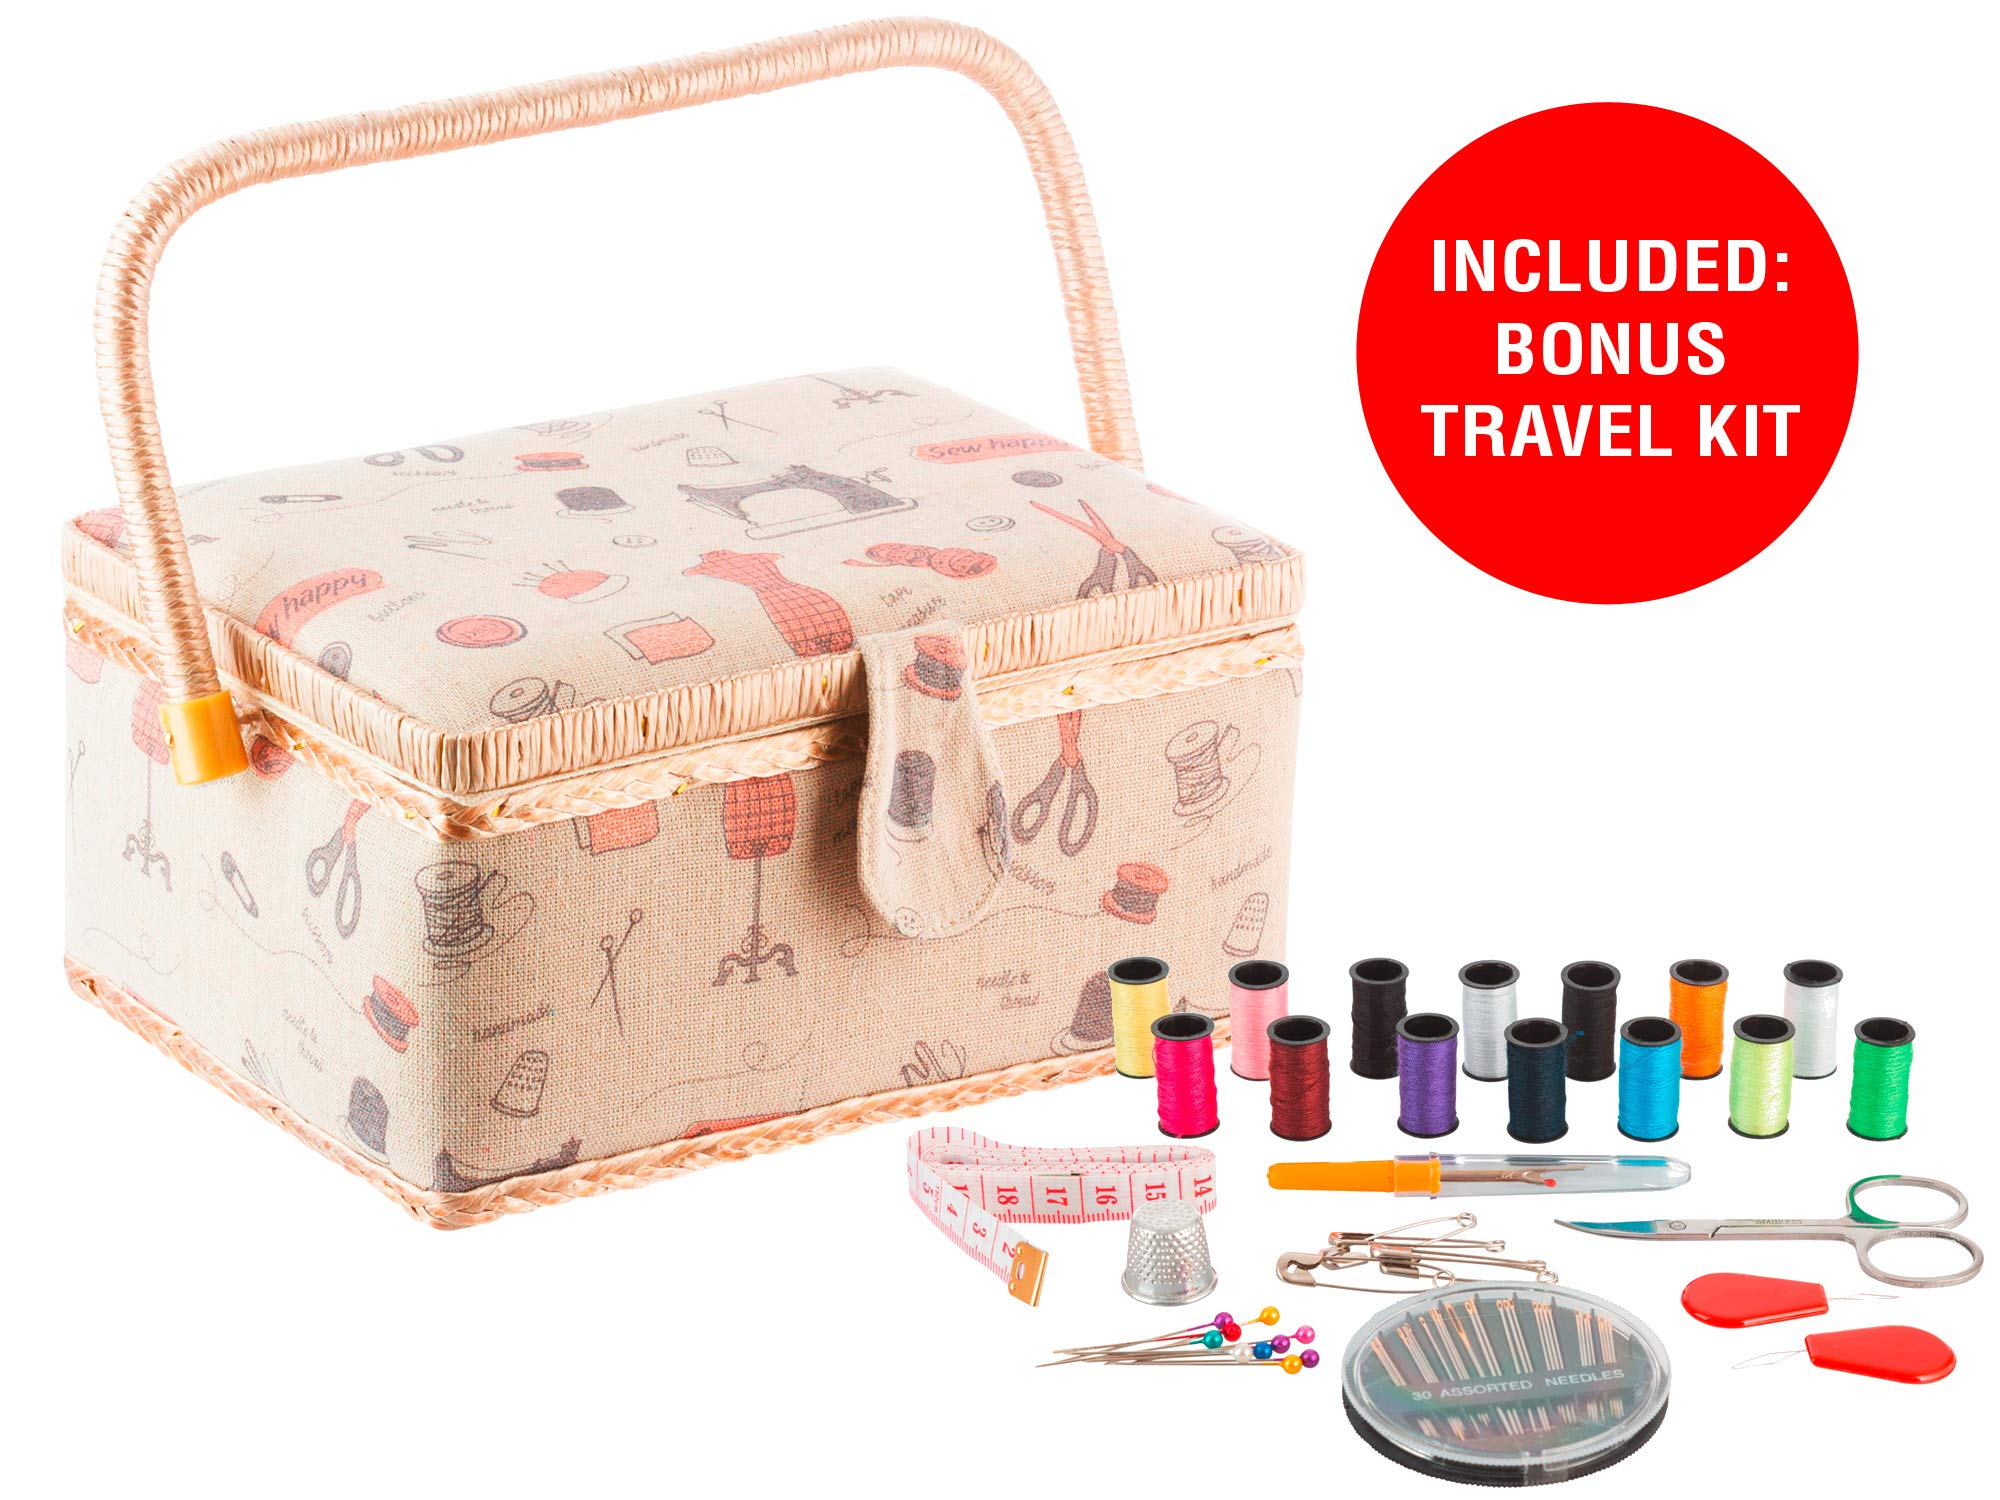 StorageMaid Sewing Basket with Bonus Travel Kit - All Essential Mending Supplies - DIY Darning Supplies Organizer Filled with Scissor, Thimble, Thread, Sewing Needles, Tape Measure and More by StorageMaid